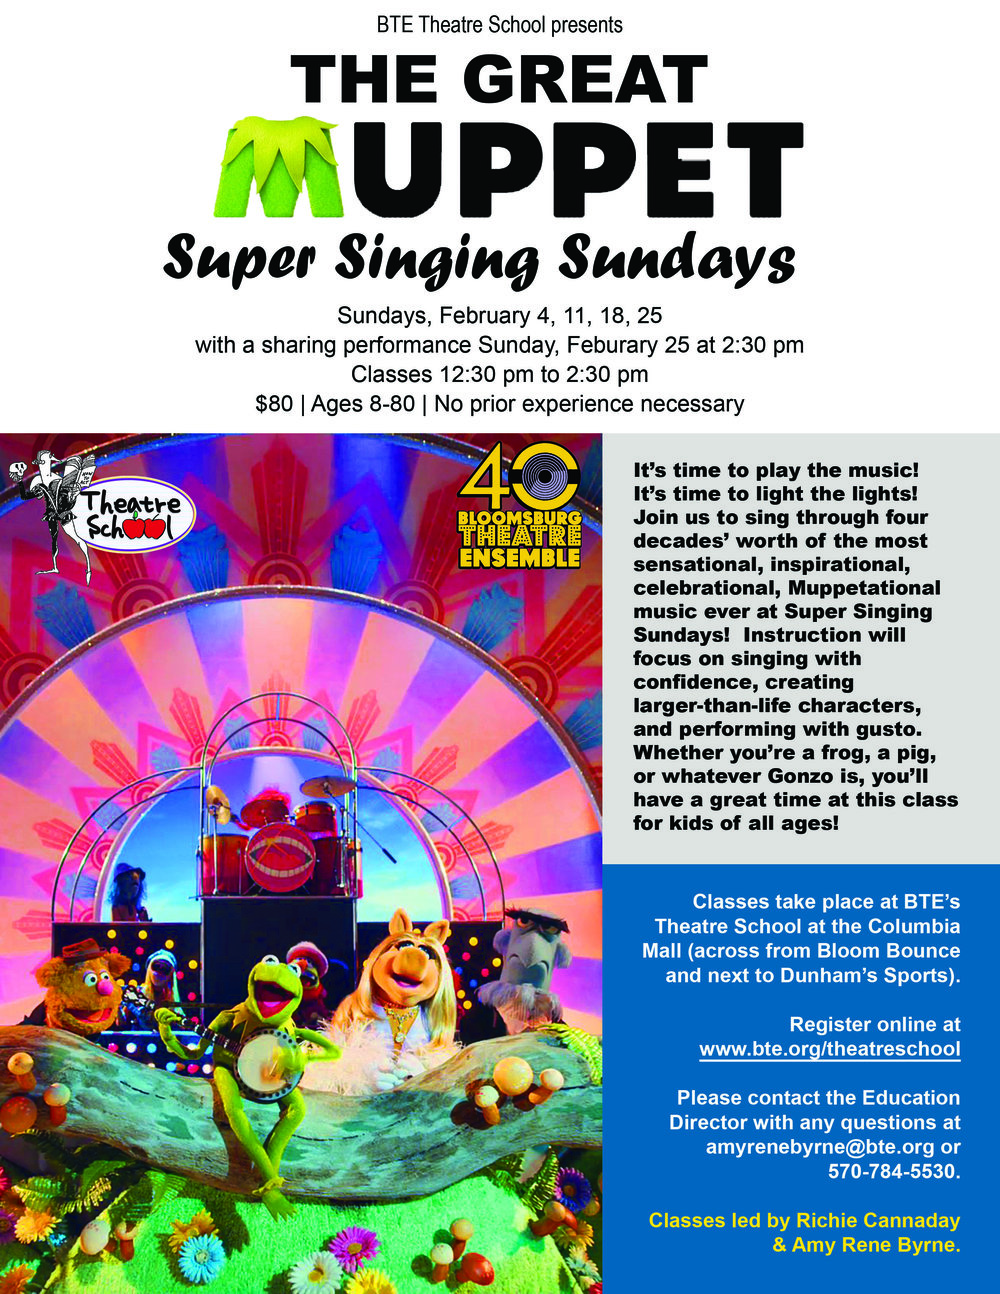 Muppet Super Singing Sundays Poster 11.17.17.jpg